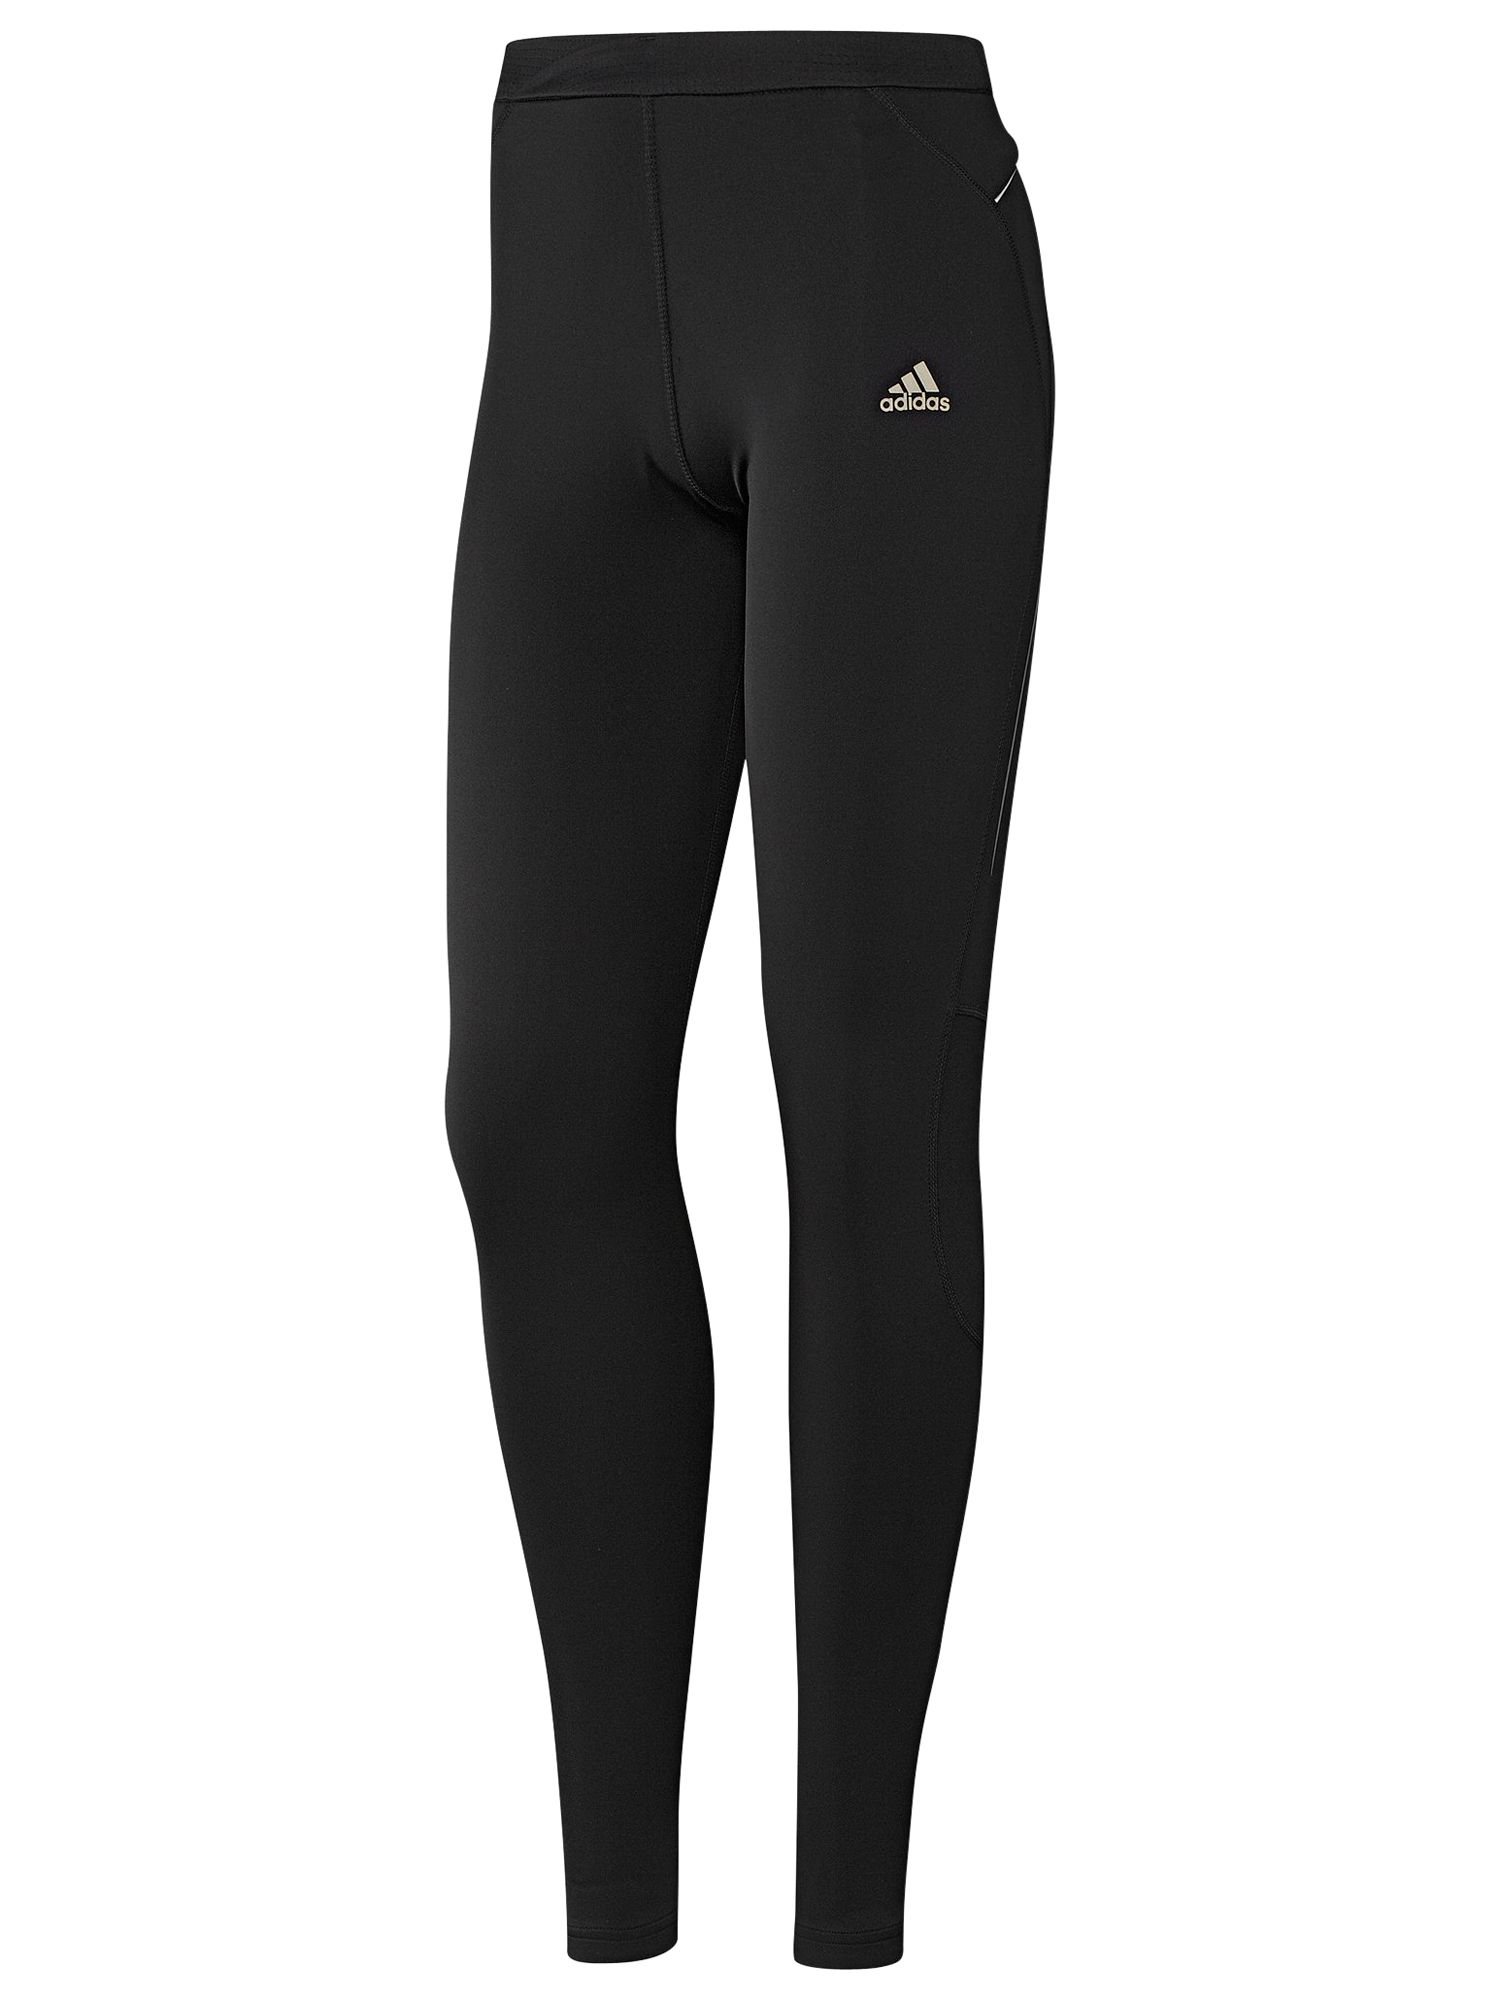 Adidas Sequencials Long Tights, Black